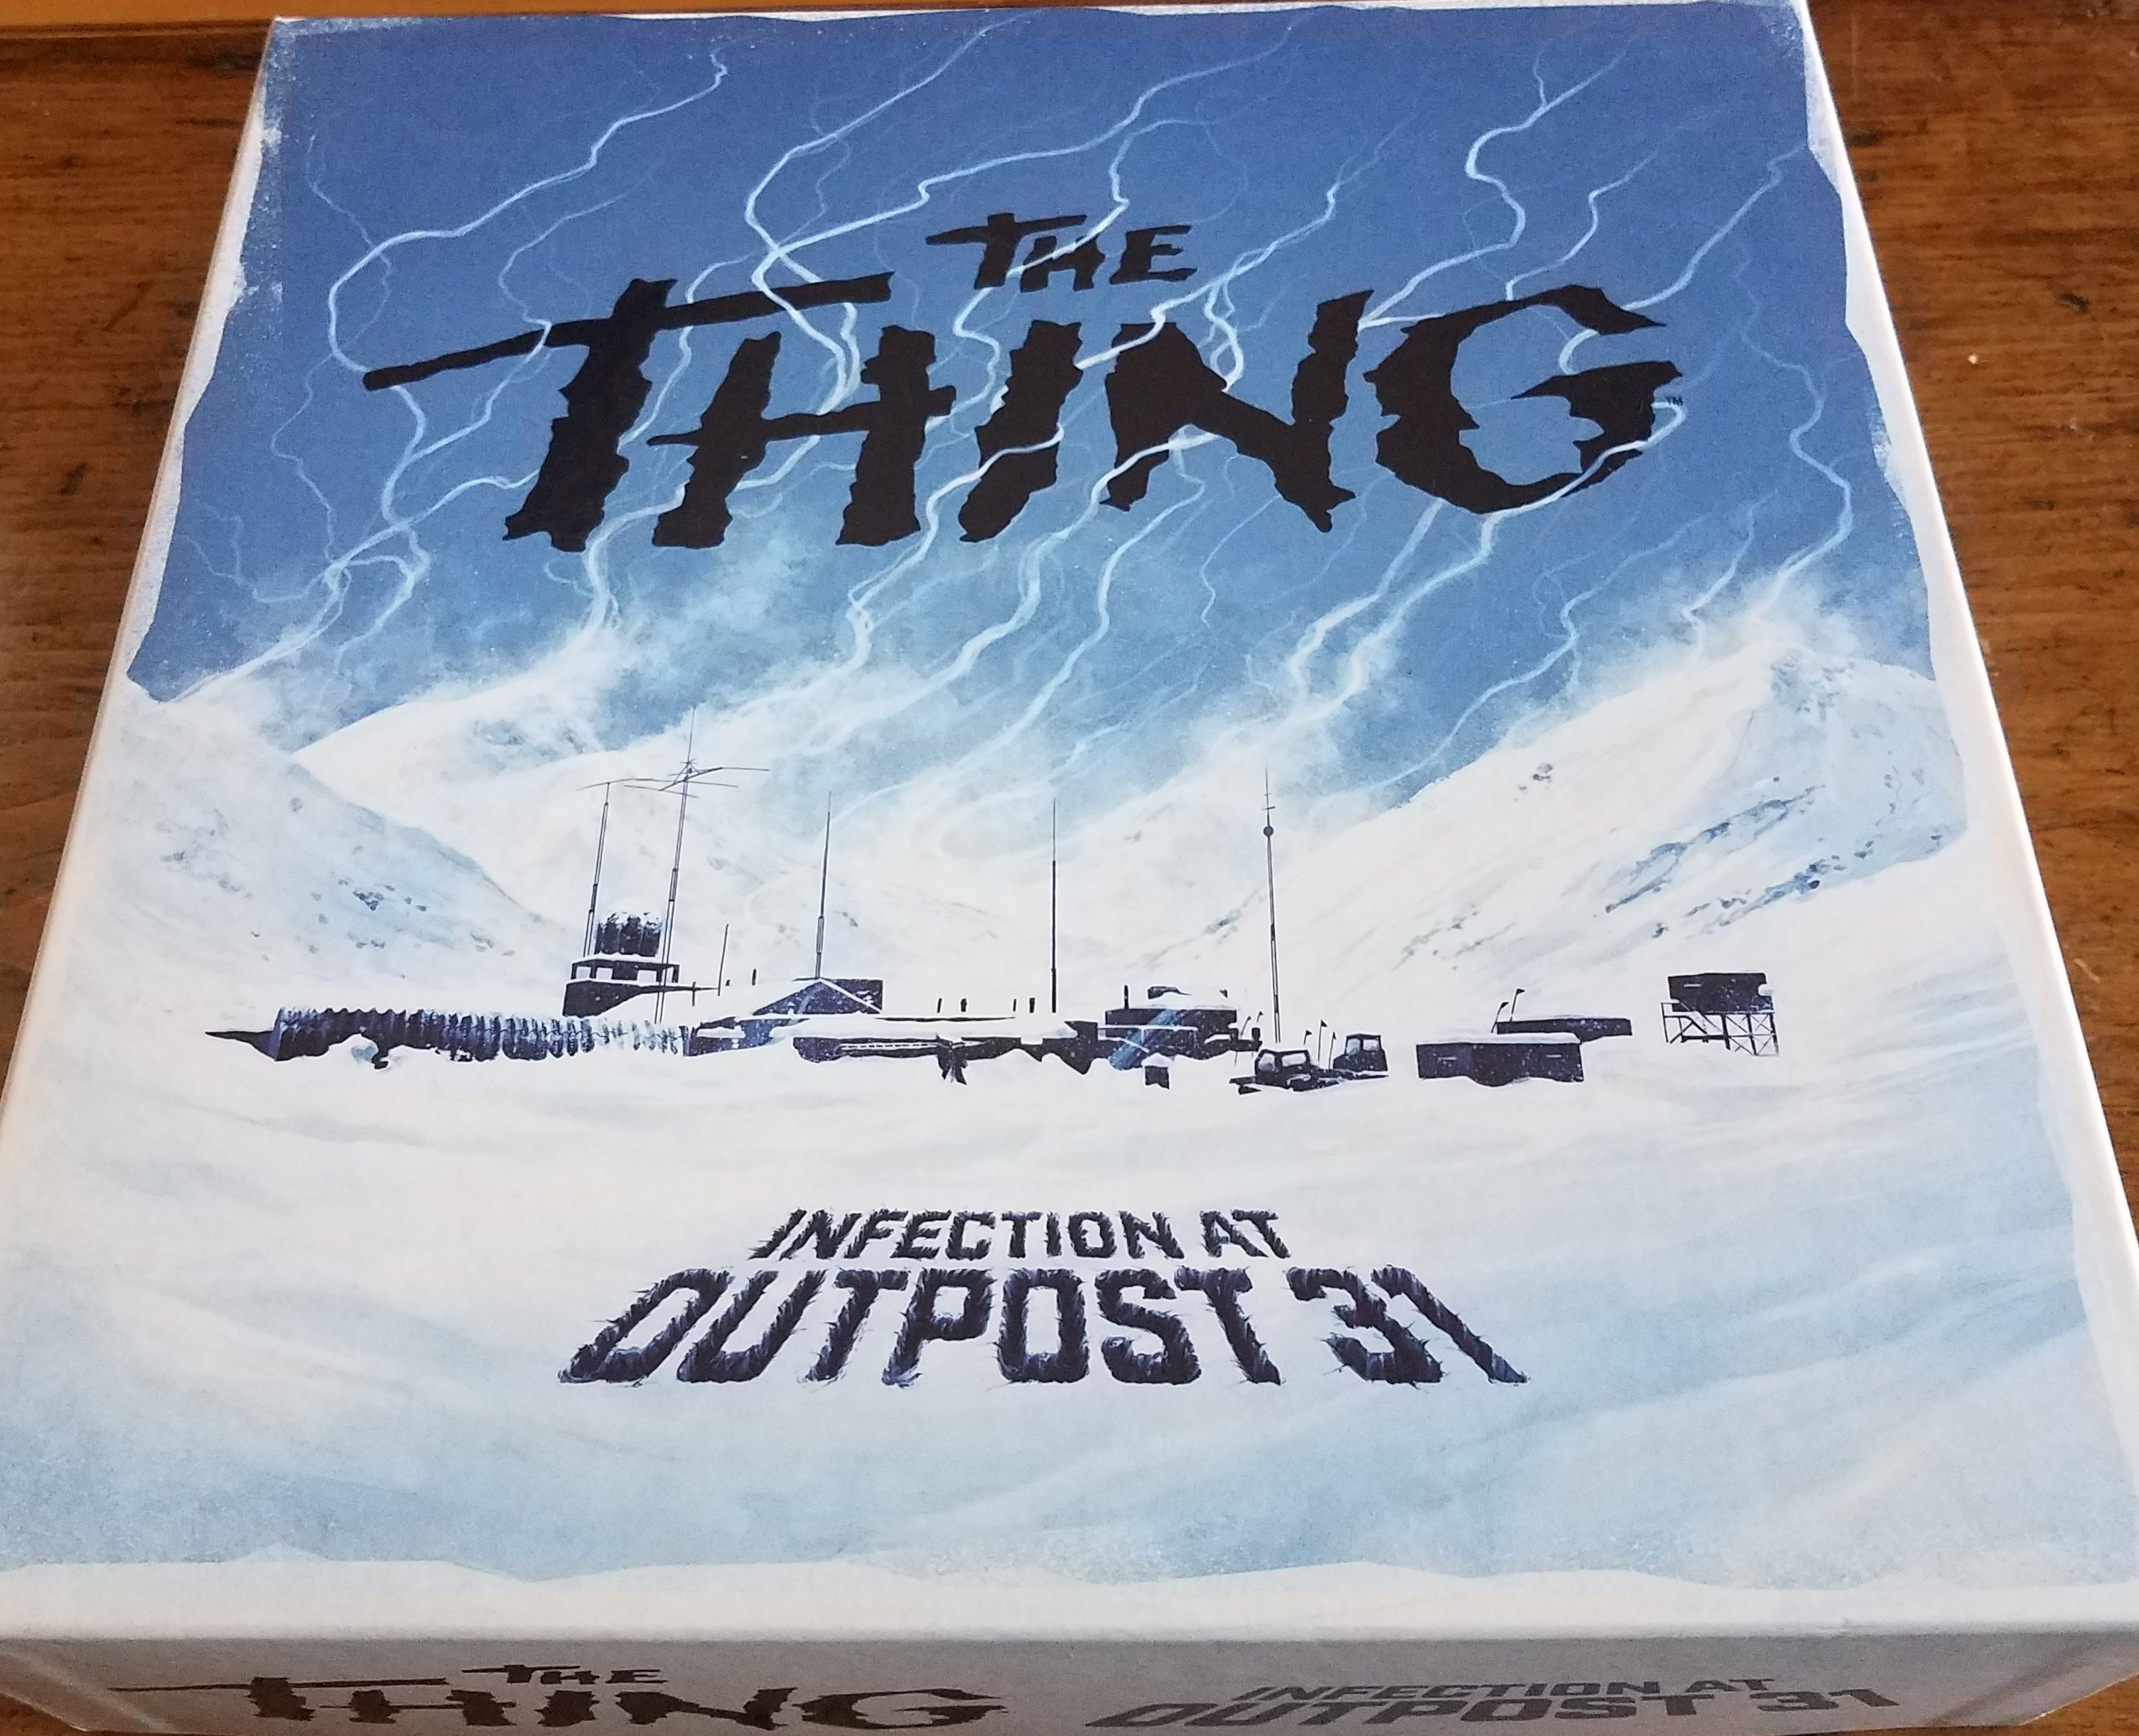 Pictured: The Thing board game